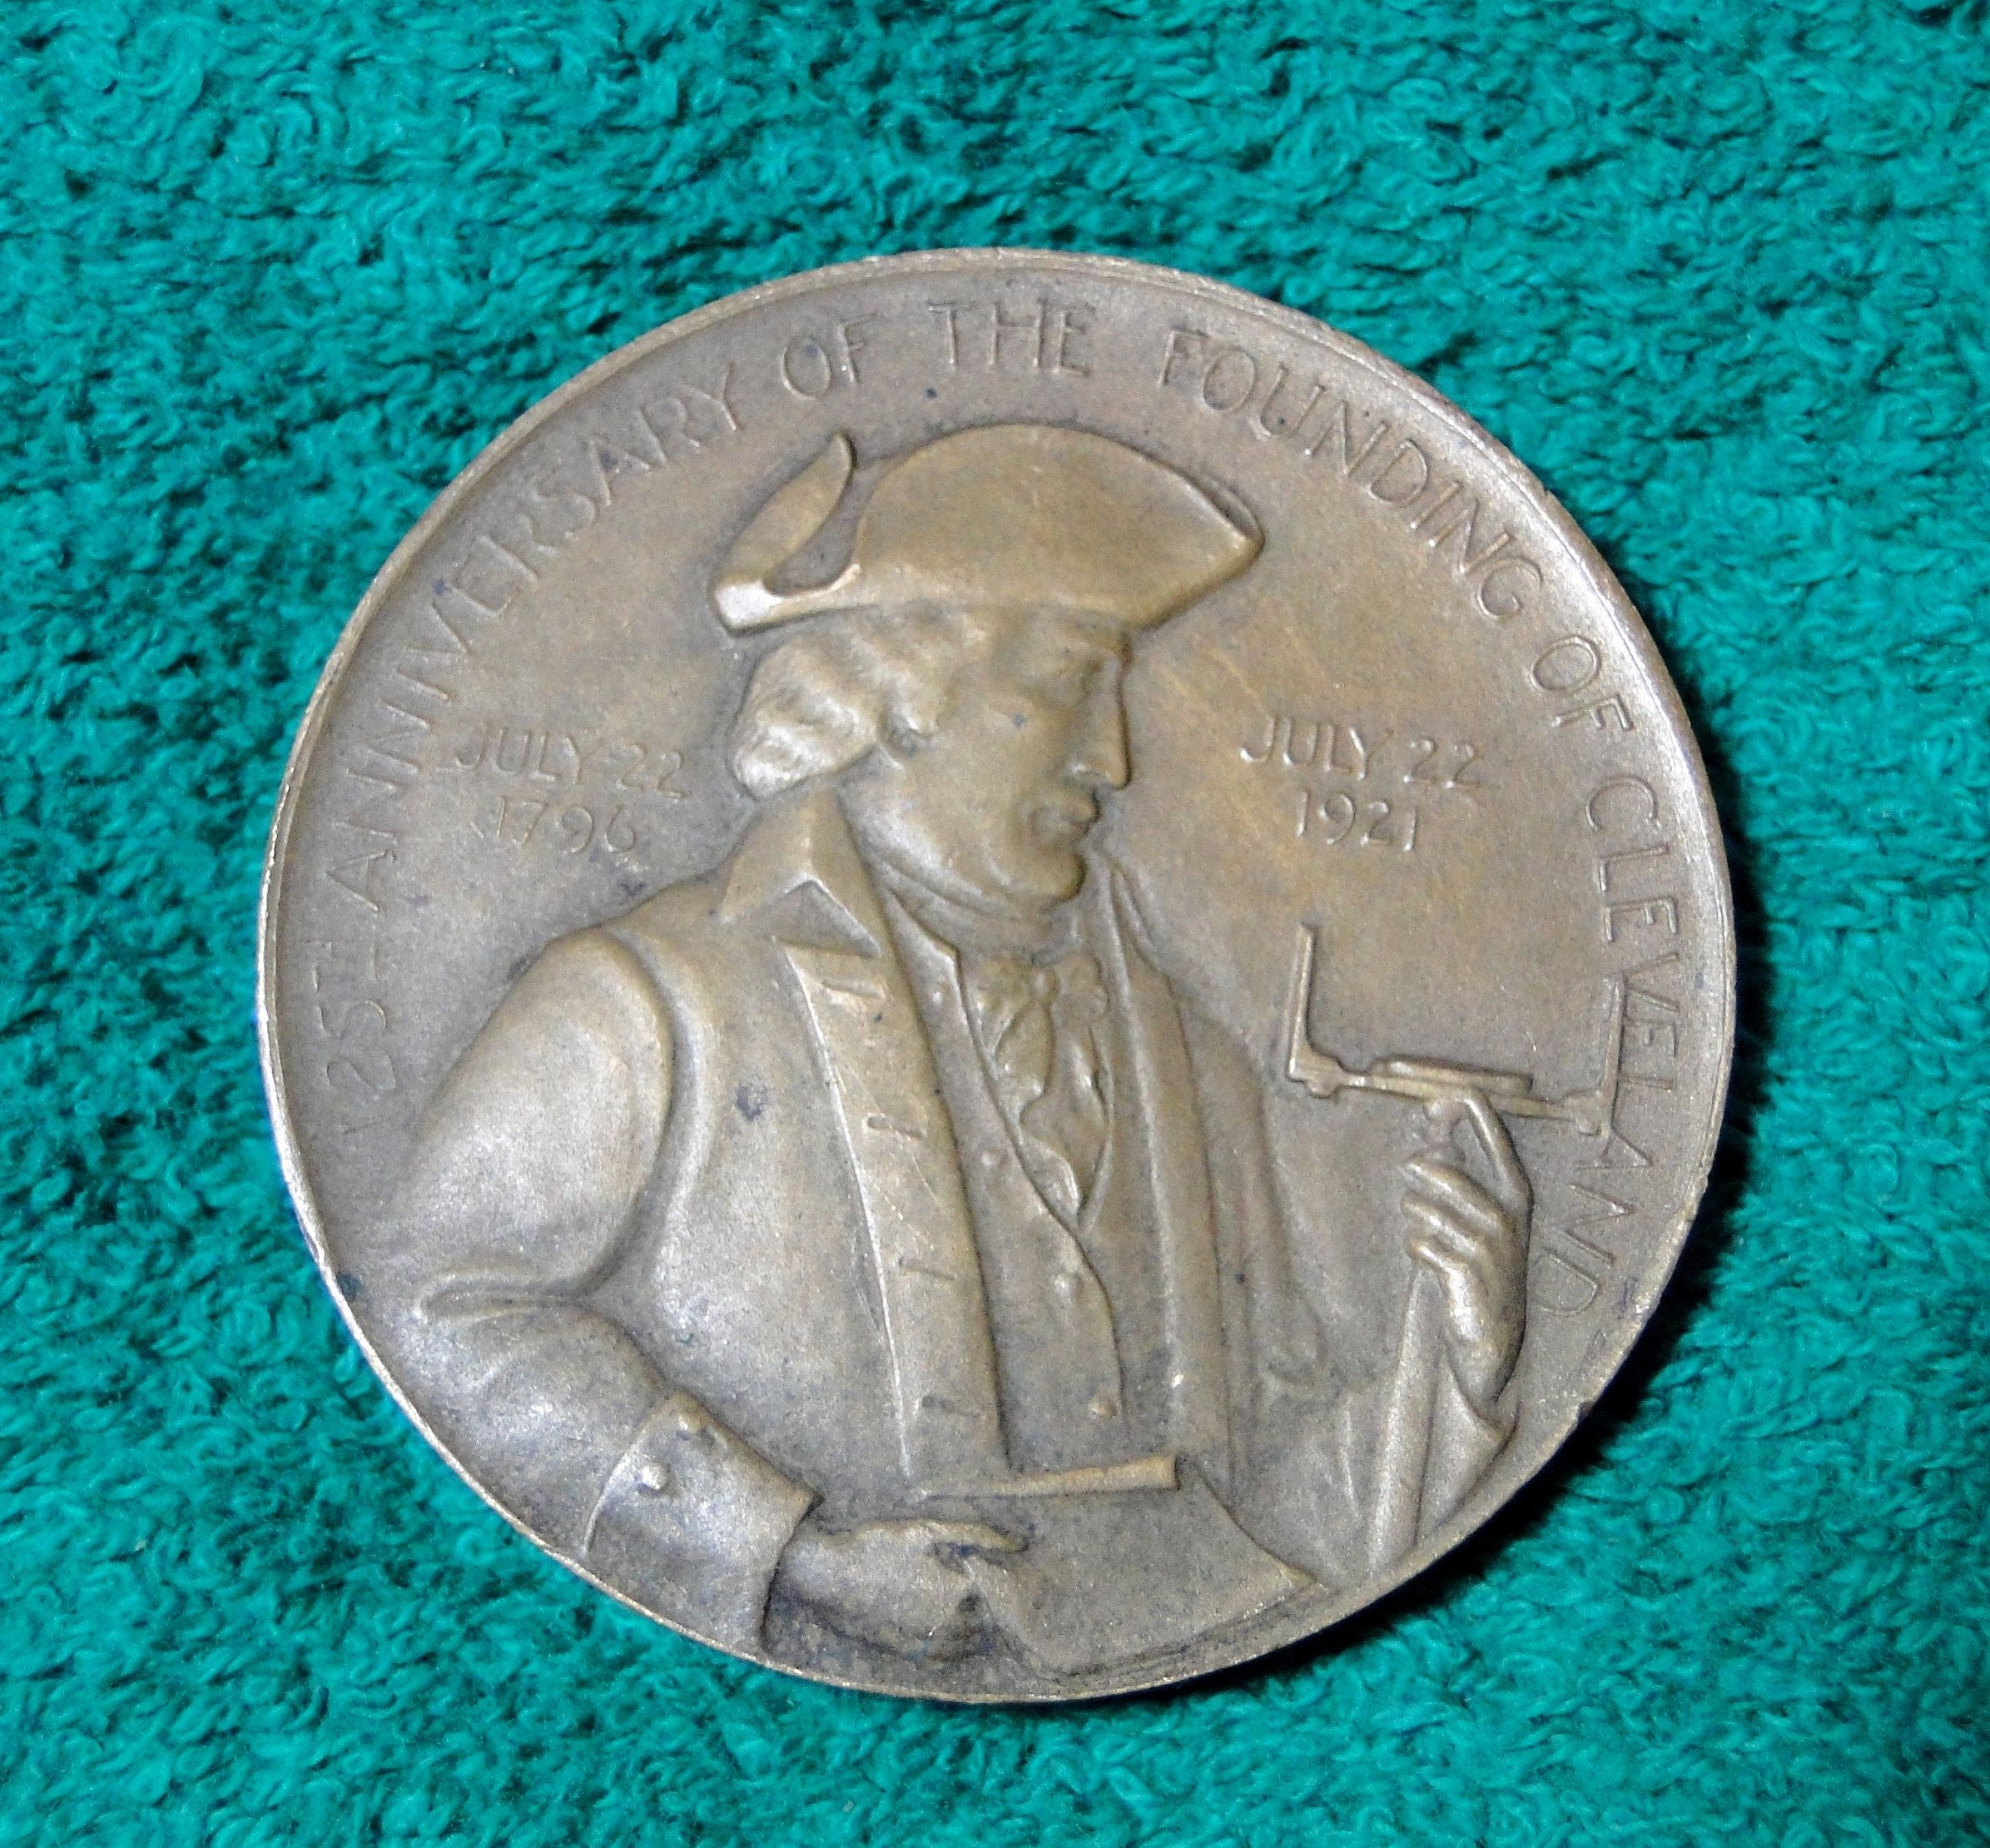 Cleveland Oh Medal Medallion 125th Anniversary Of The Founding Of